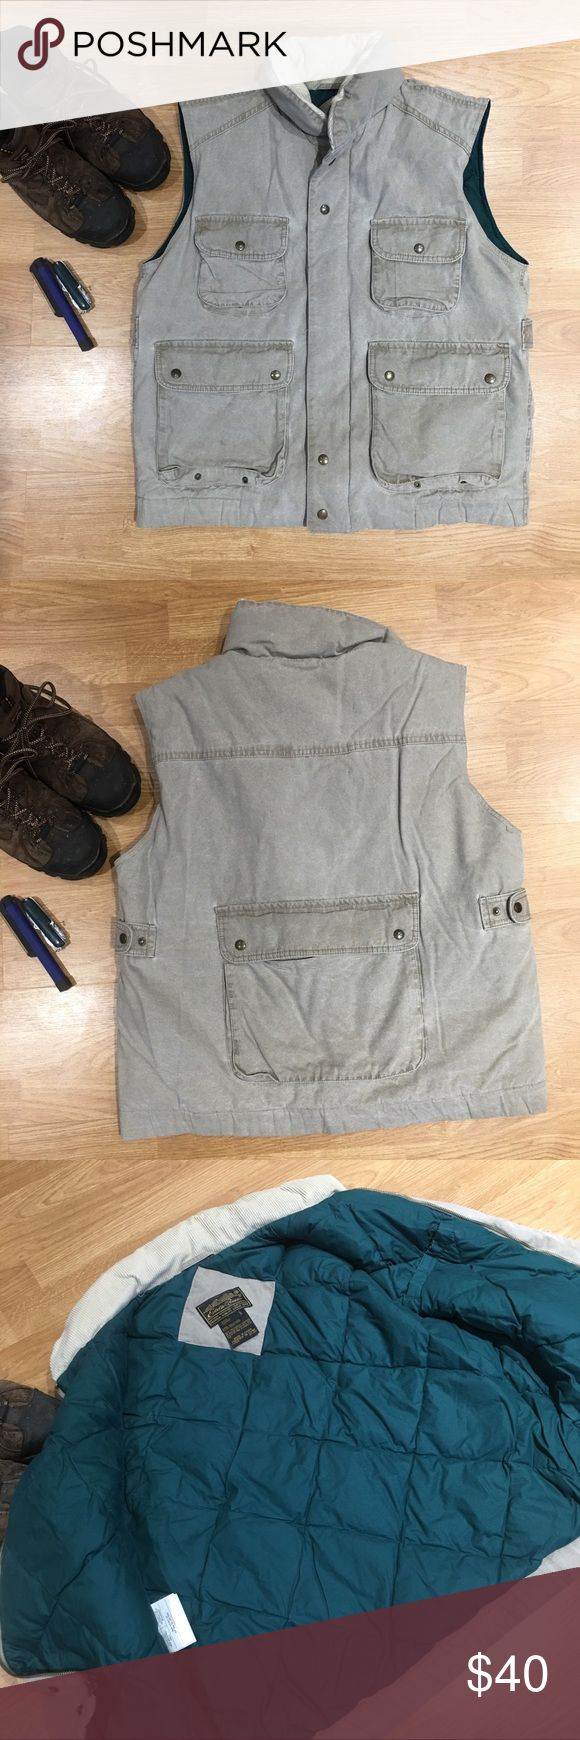 Eddie Bauer Atlas Traveler Hiking/Utility Vest Hiking/Utility goose down vest with 5 pockets including one on the back. Also has one inside chest Velcro pocket. Men's size large. In great condition! Has one tiny spot on the front pocket that you can see in the first pic. Eddie Bauer Jackets & Coats